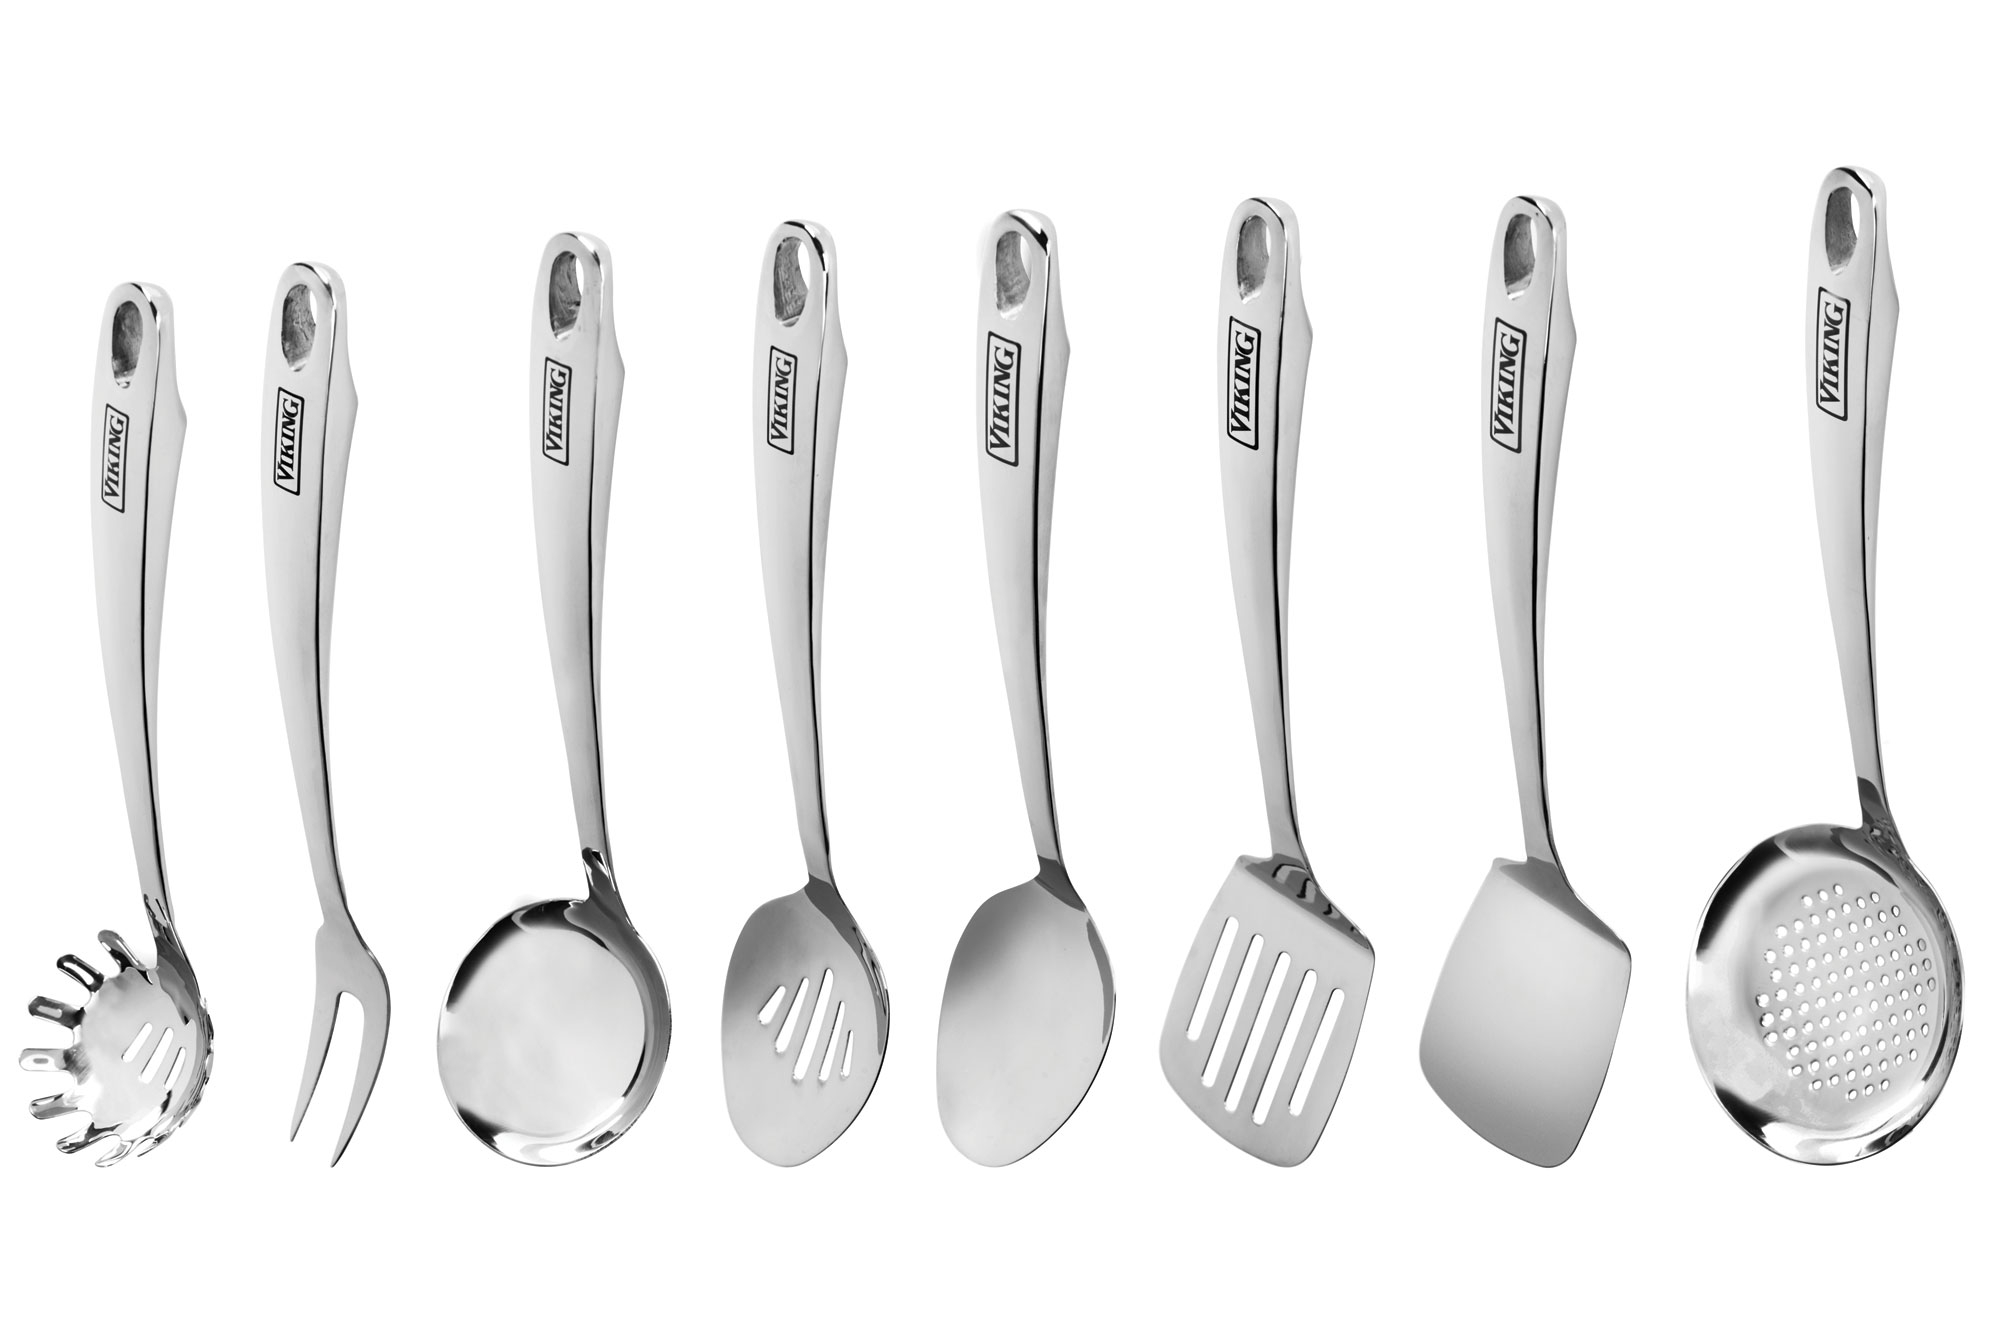 Viking Stainless Steel Kitchen Utensil Set 8 Piece Cutlery And More